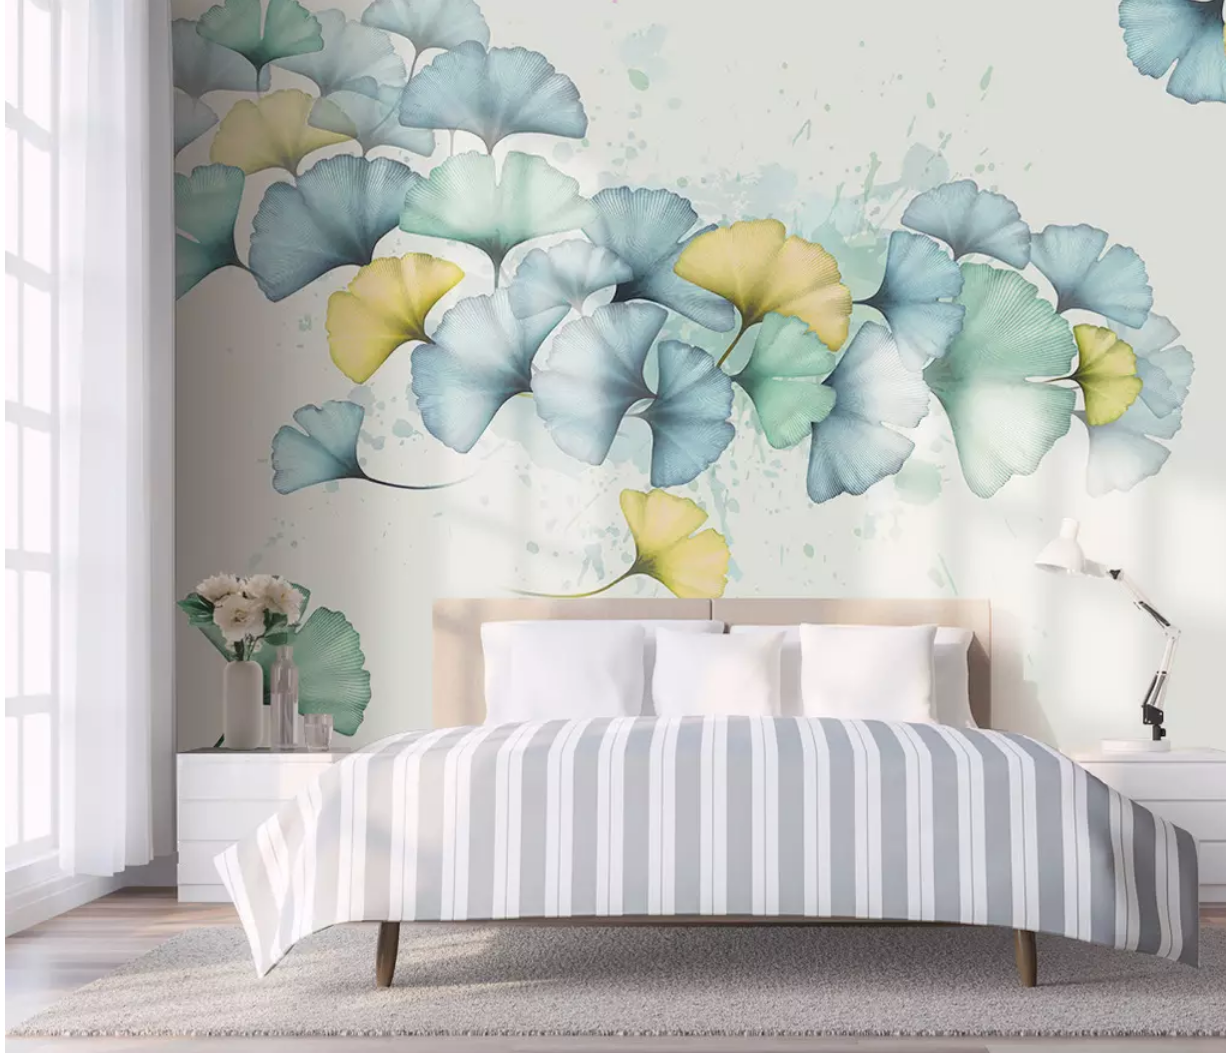 3D Beautiful Leaves I2281 Wallpaper Mural Sefl-adhesive Removable Sticker Wendy